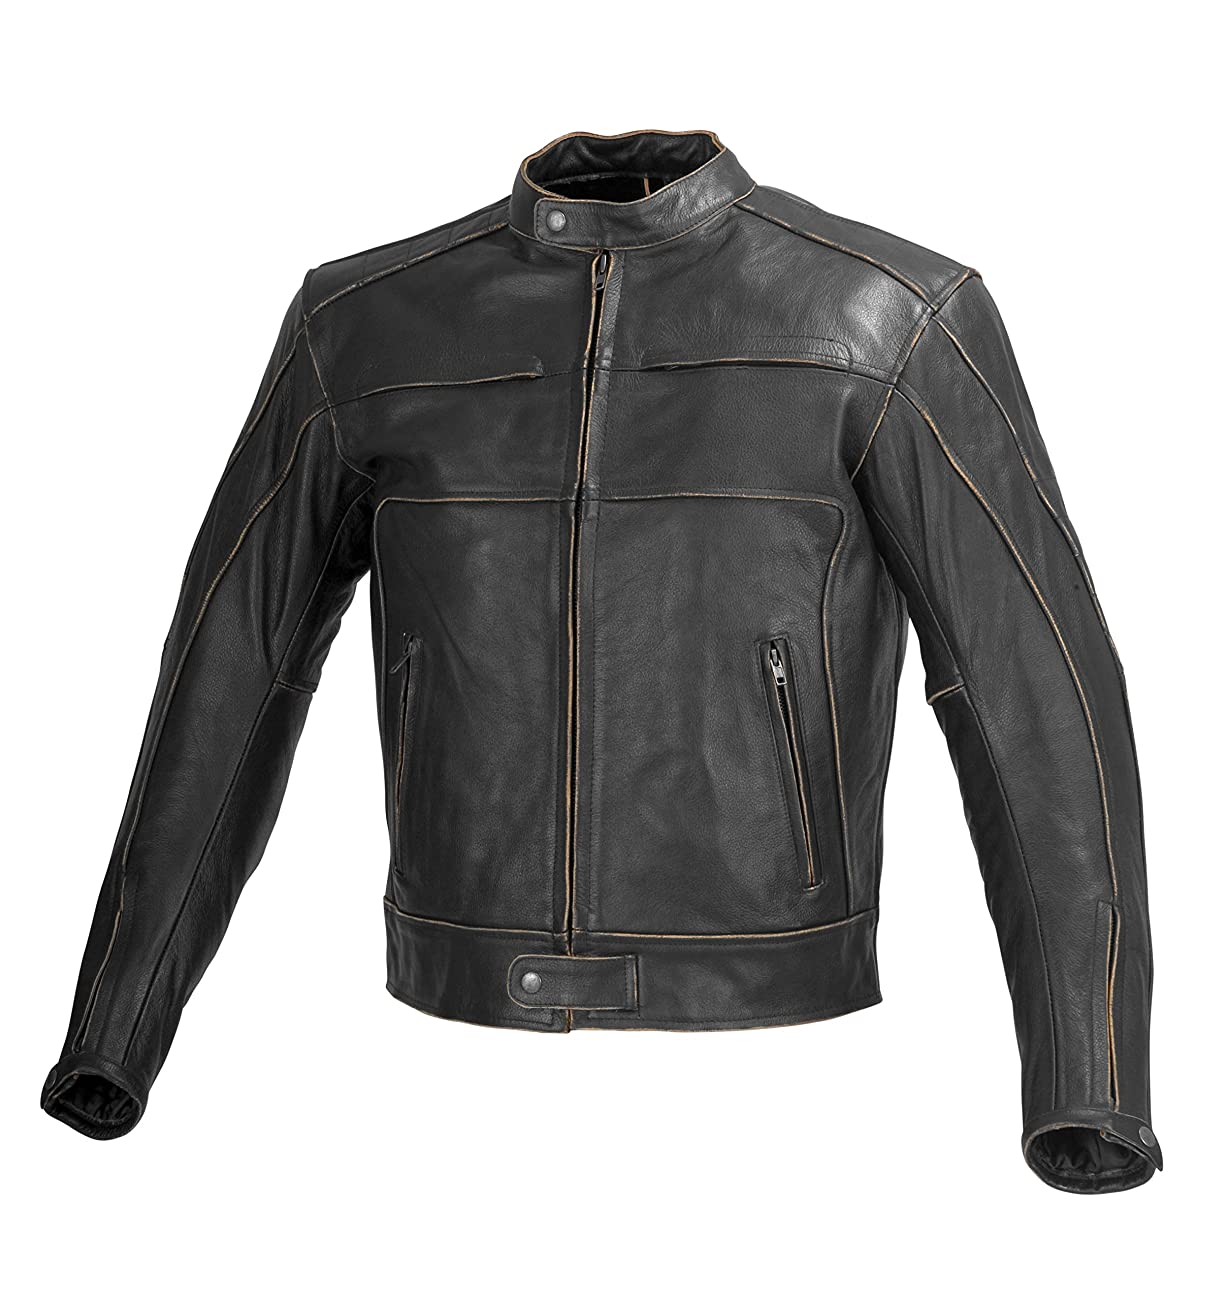 Men Motorcycle Armor Leather Jacket Vintage Style by Xtreemgear Black MBJ024 0